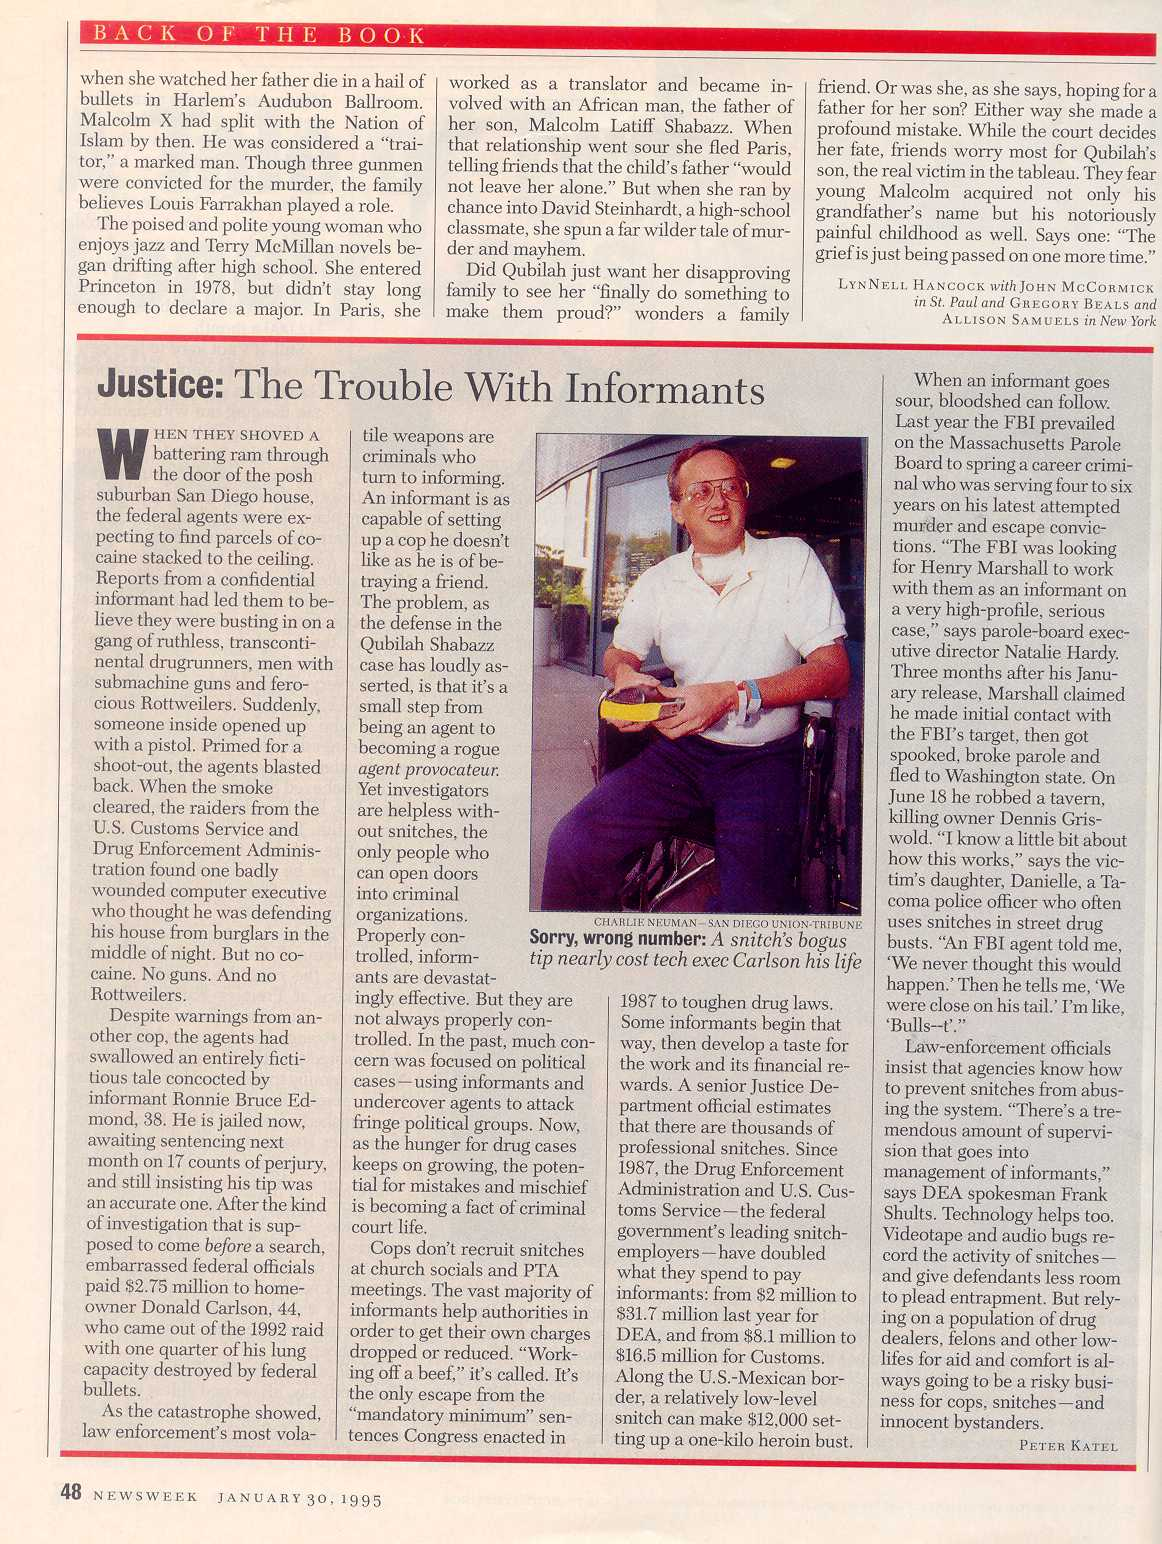 Peter Katel – The Trouble With Informants – NEWSWEEK Magazine (1995)